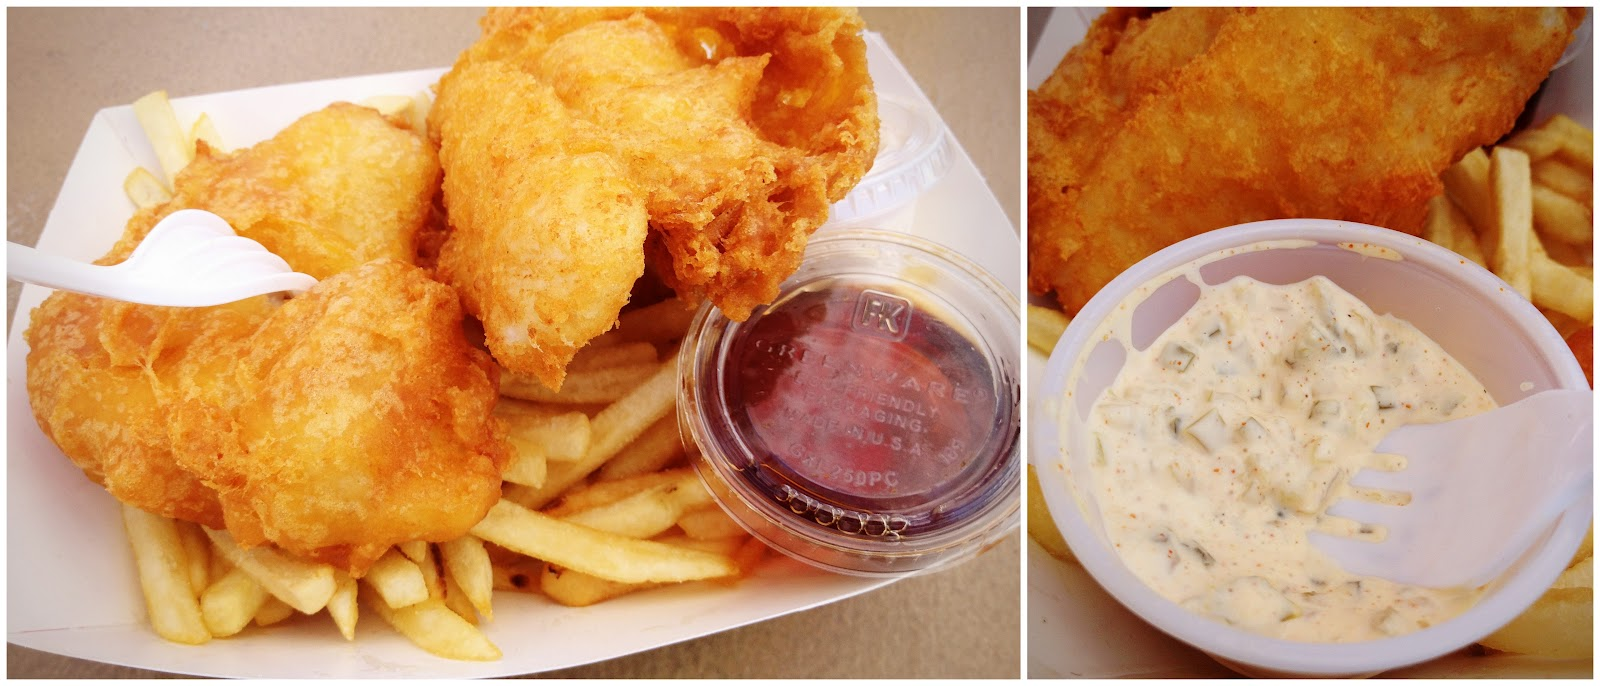 My Go To Order Is Actually The Fish And Chips, Which Is Vastly Underrated  At Redu0027s In My Opinion. Itu0027s A Gigantic Portion Of Flakey White Fish,  Battered And ...